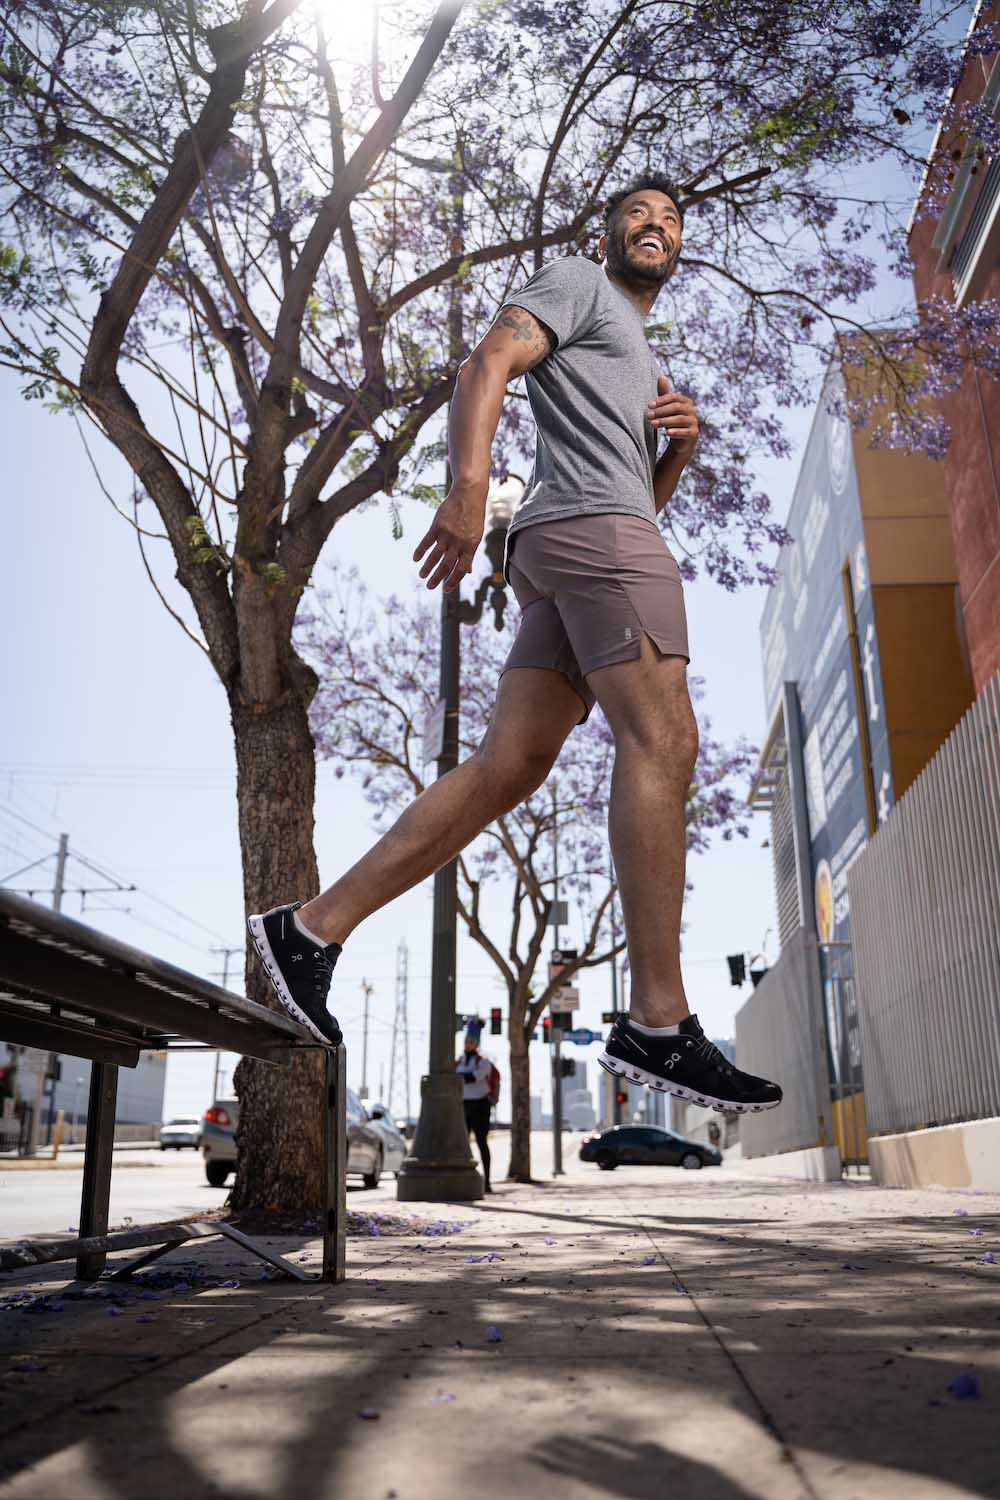 Lifestyle-On-Location-Model-Onmodel-Damion-Lloyd-Photography-Commercial-Product-Apparel-Clothing-Los-Angeles-Orange-County-male-man-GLYDER-sportswear-outdoor-city-sidwalk-smile-active-jump